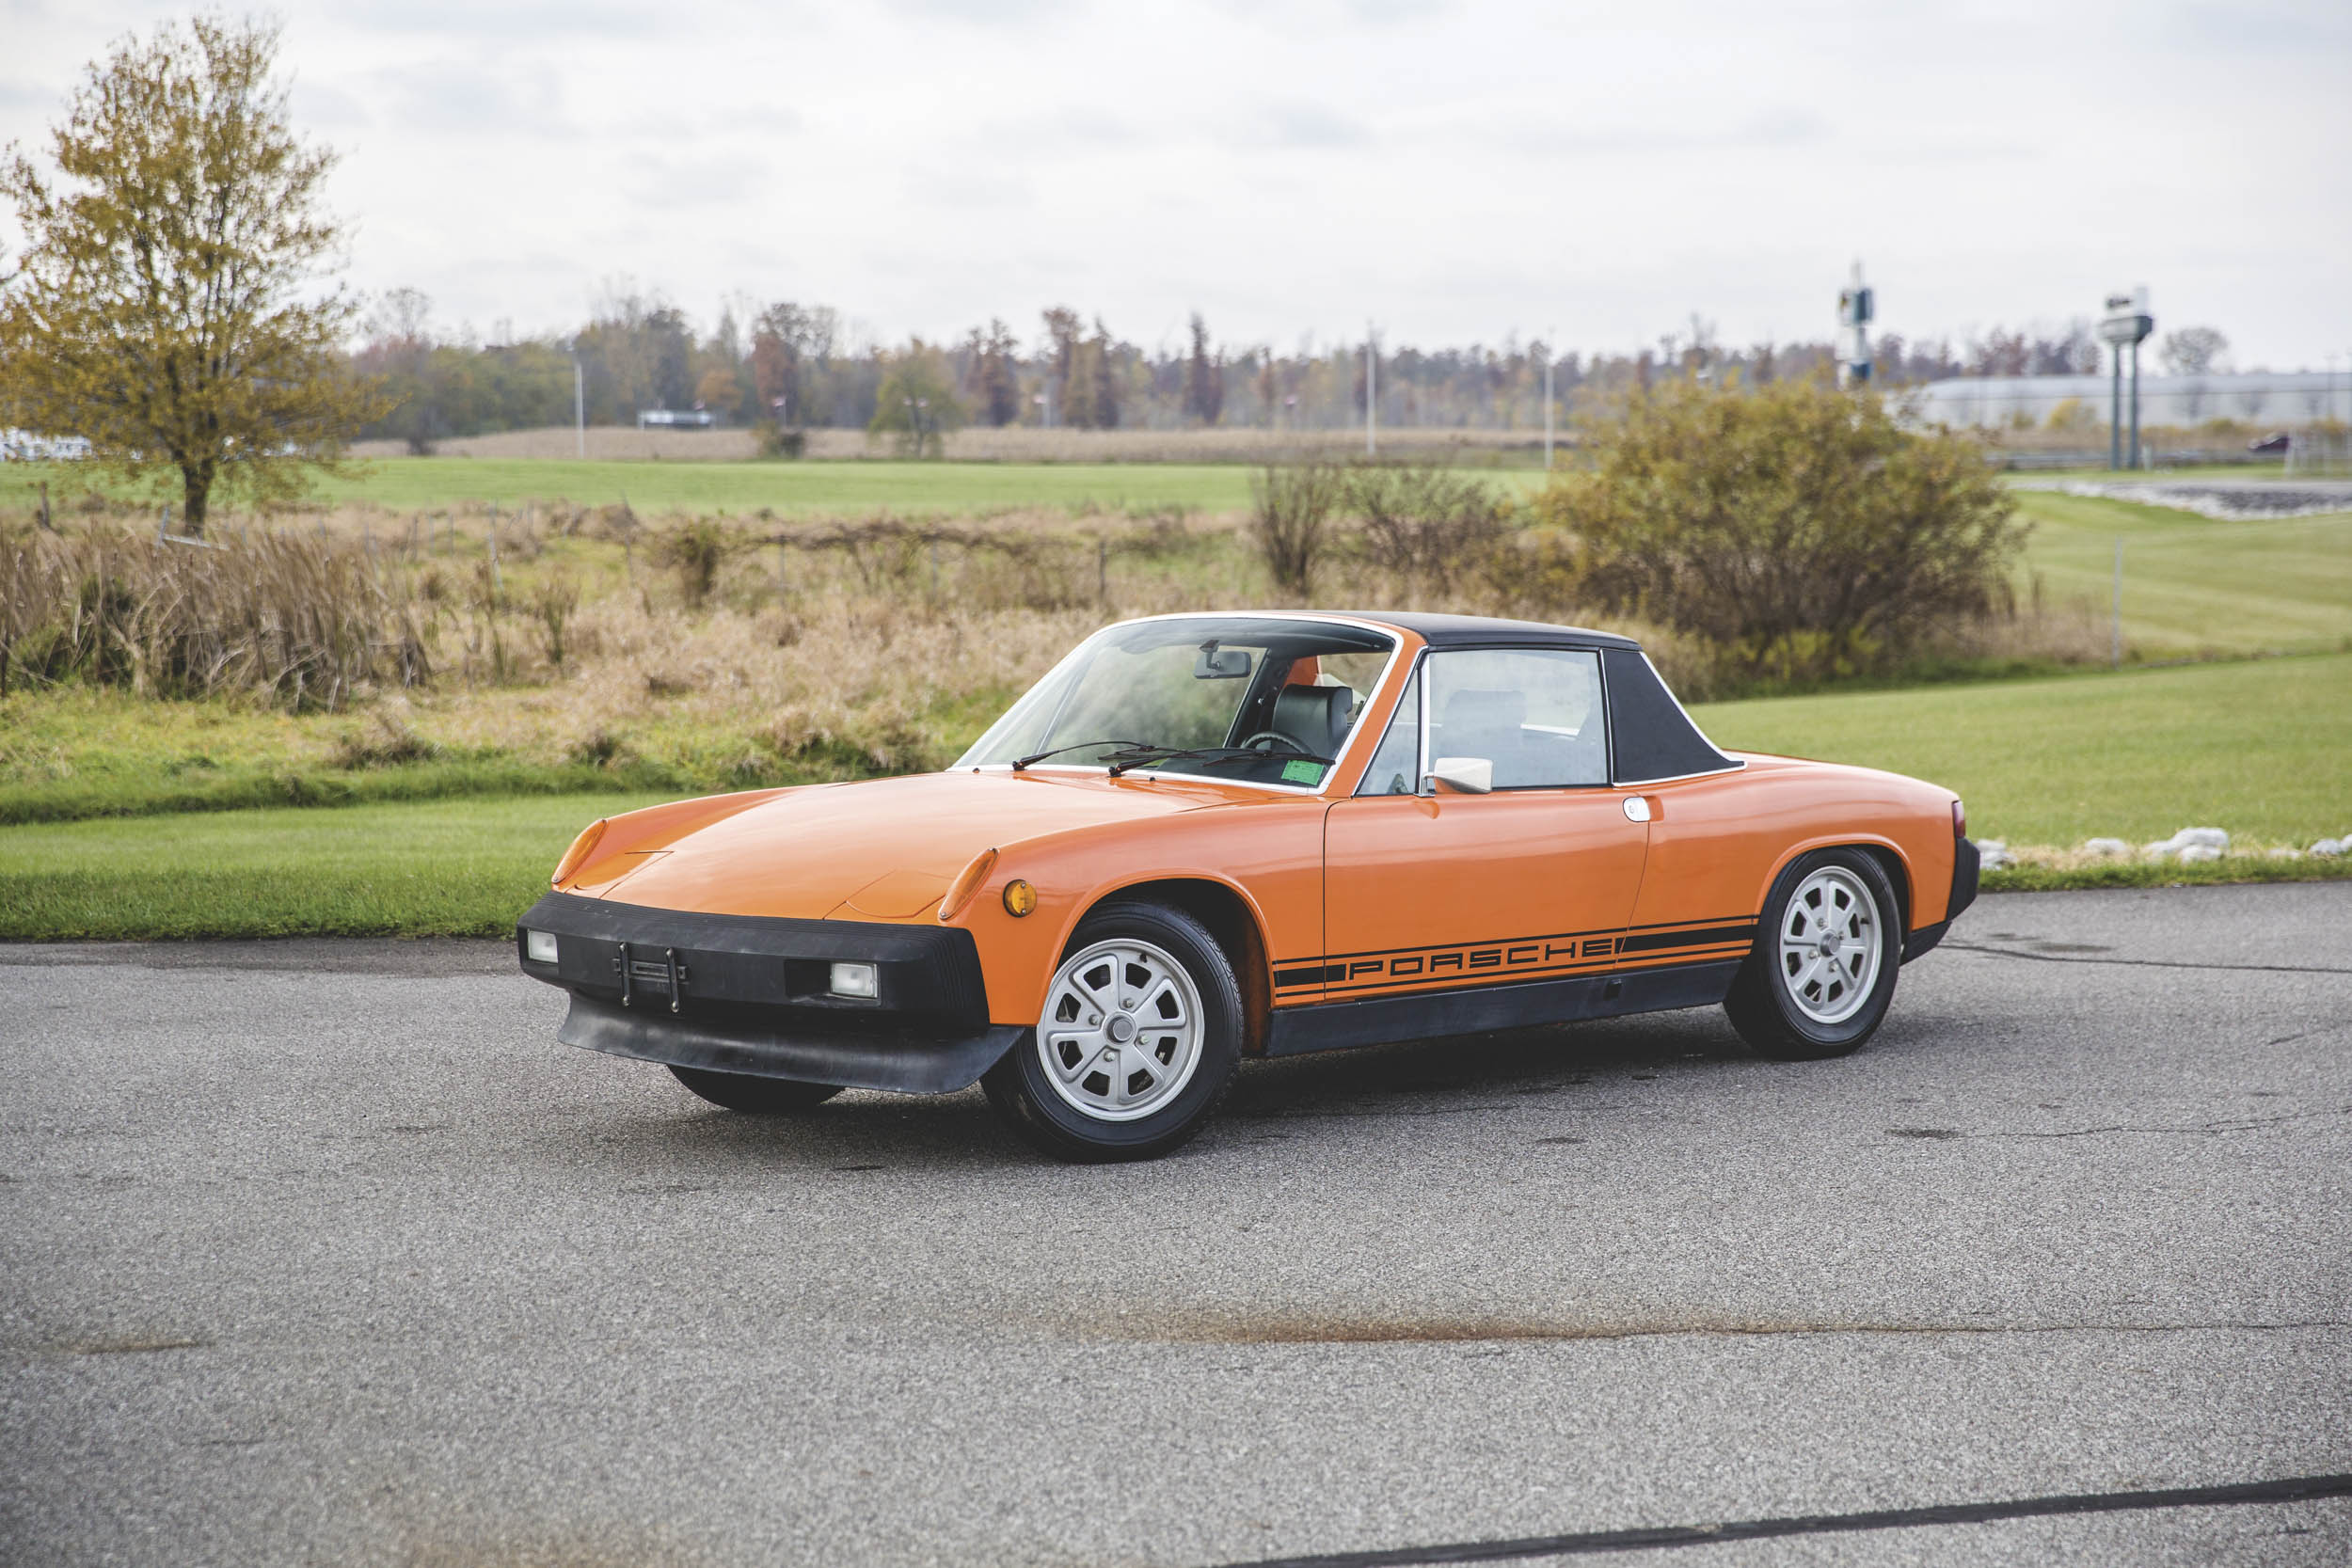 This May Be The Most Original 1975 Porsche 914 2 0 In Existence Hagerty Media